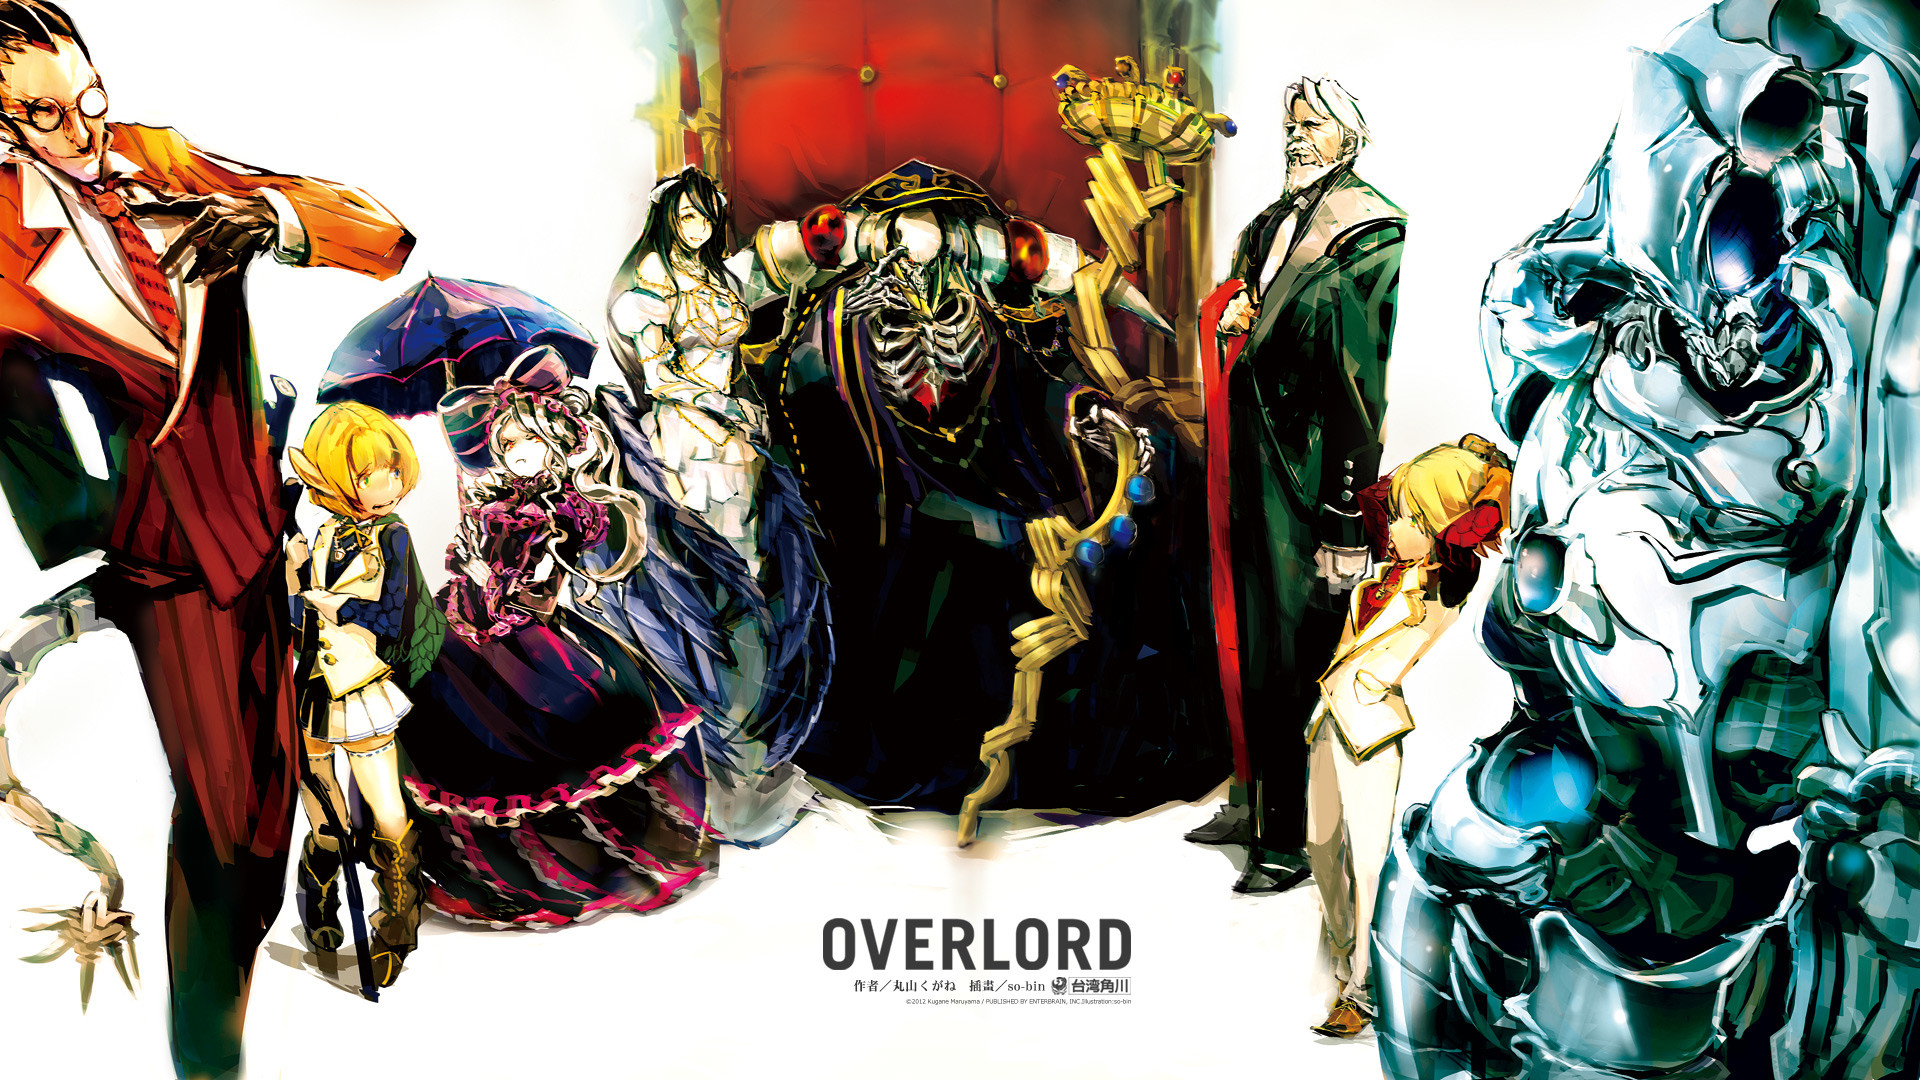 Res: 1920x1080, Overlord Wallpaper.jpg